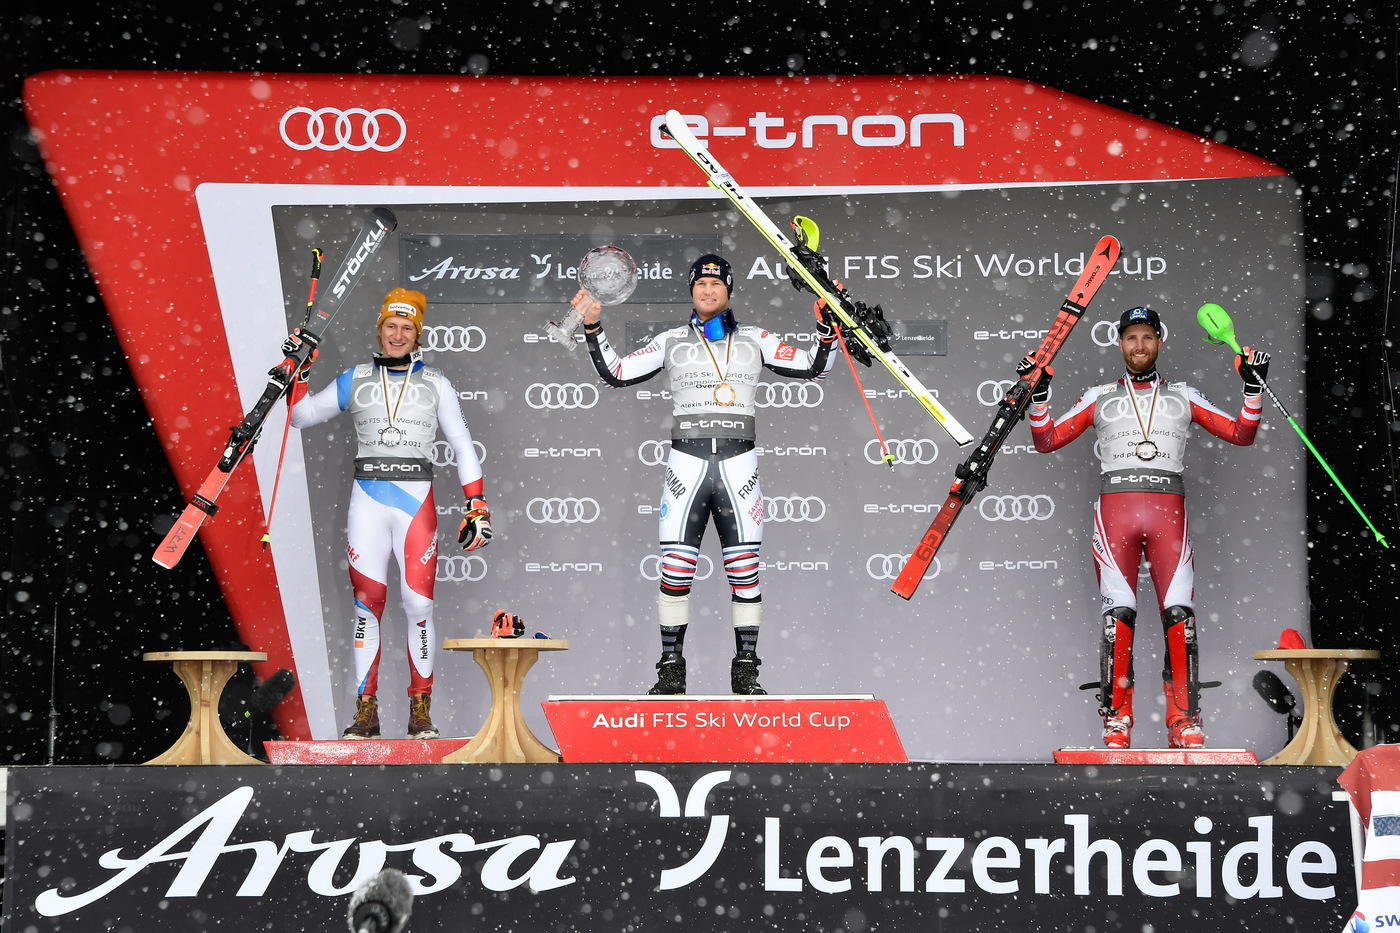 Longines Alpine Skiing Event: Lenzerheide marks the end of a prolific season for Longines' athletes 7